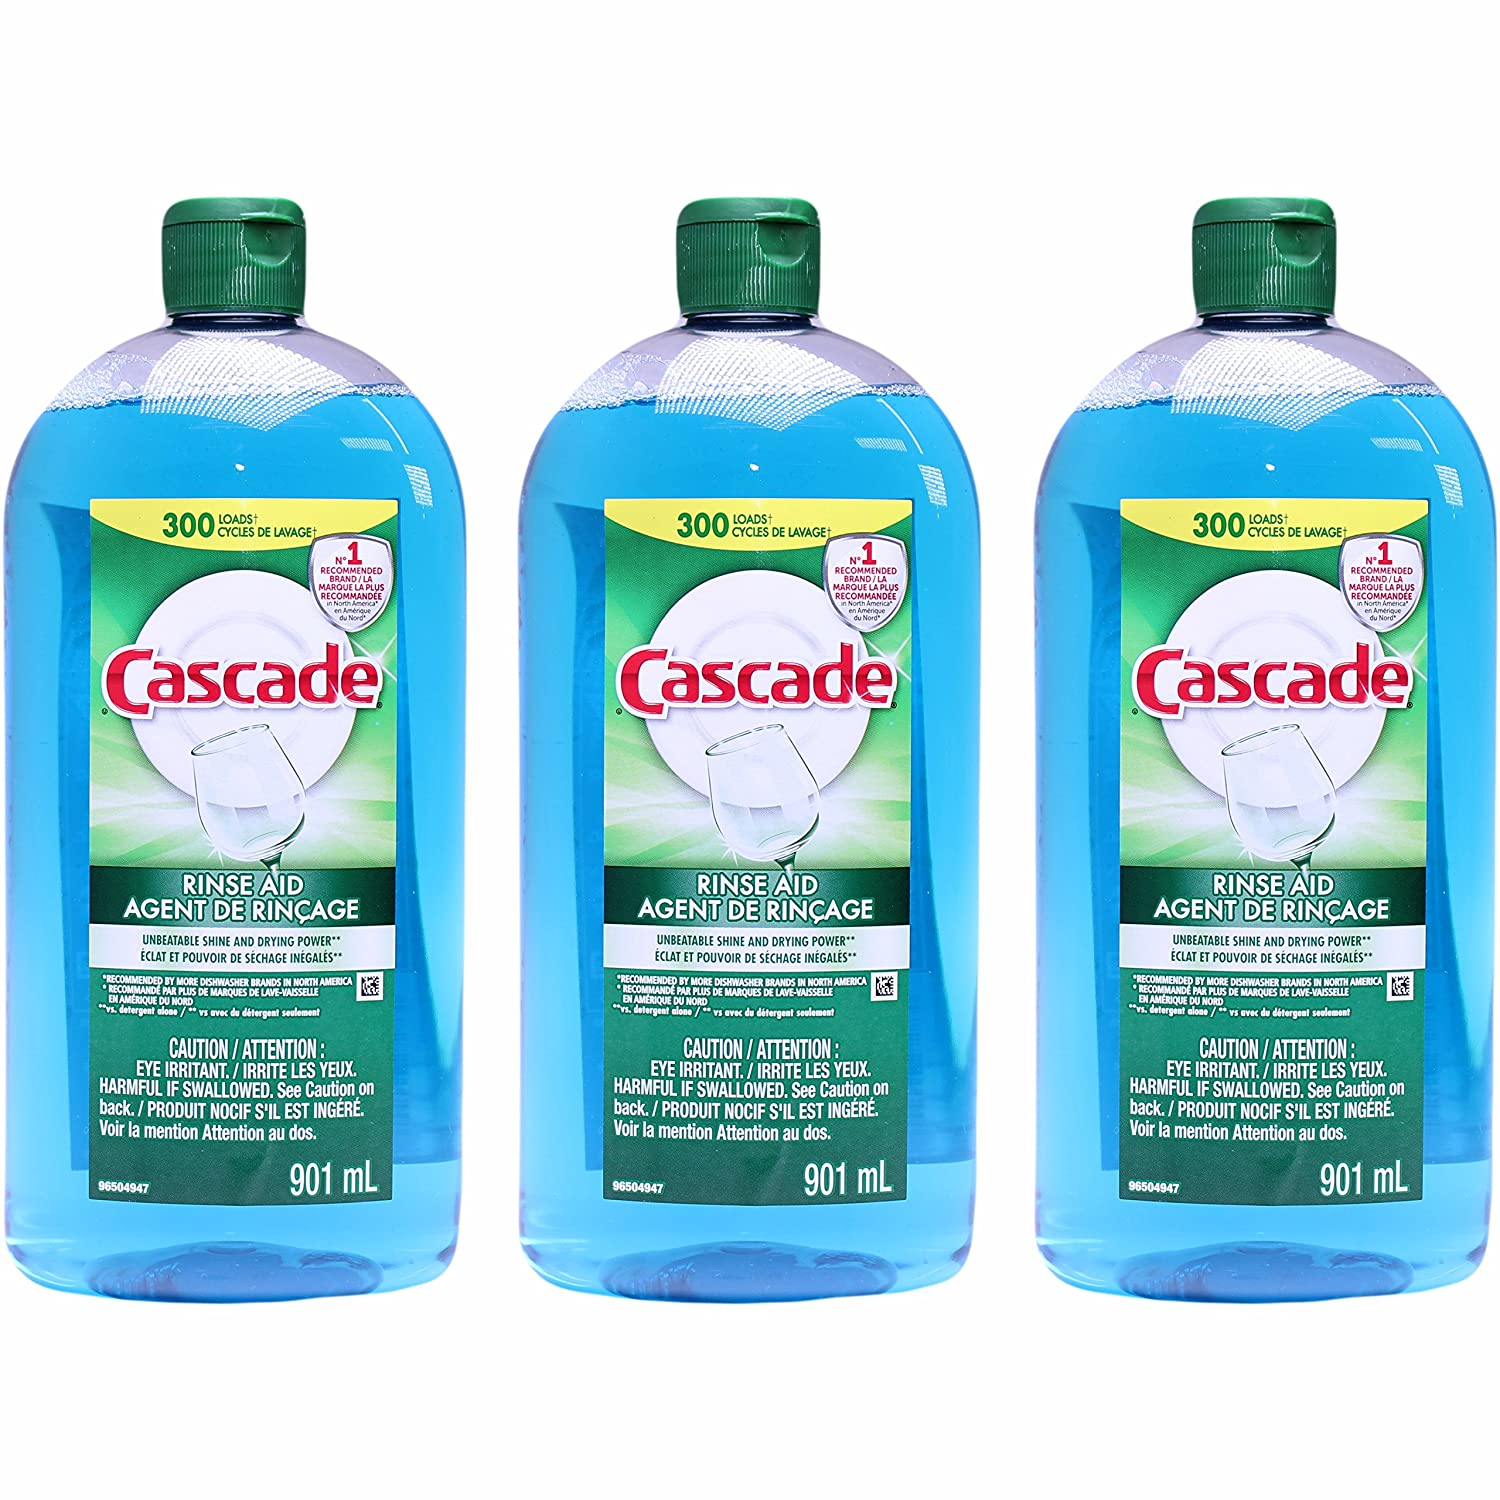 Cascade Rinse Aid, Dishwasher Rinse Agent, Original Scent 30.5 Ounce, (Pack of 3)